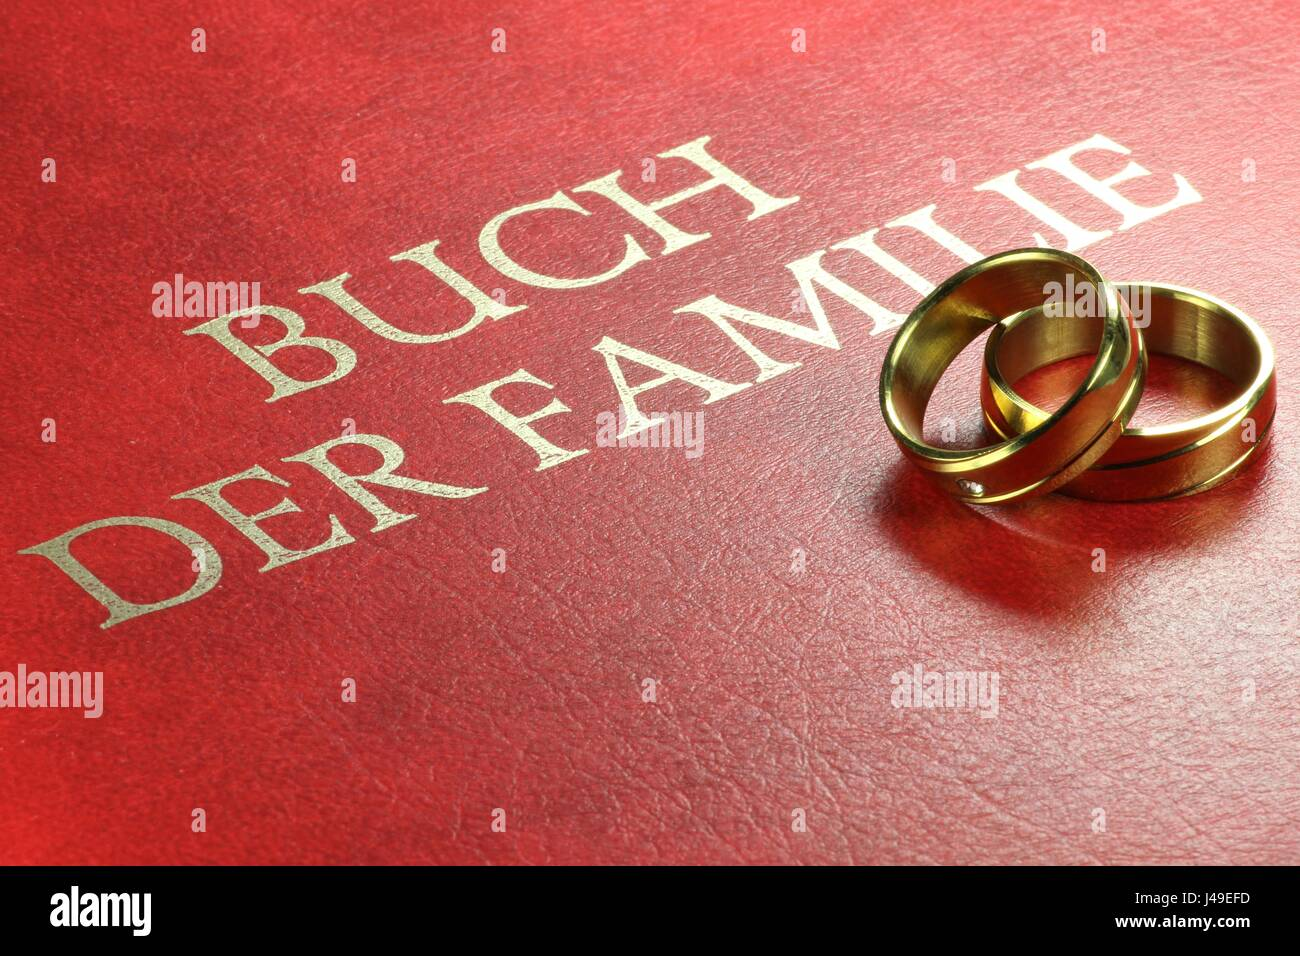 Golden wedding rings on German family book Stock Photo: 140350545 ...